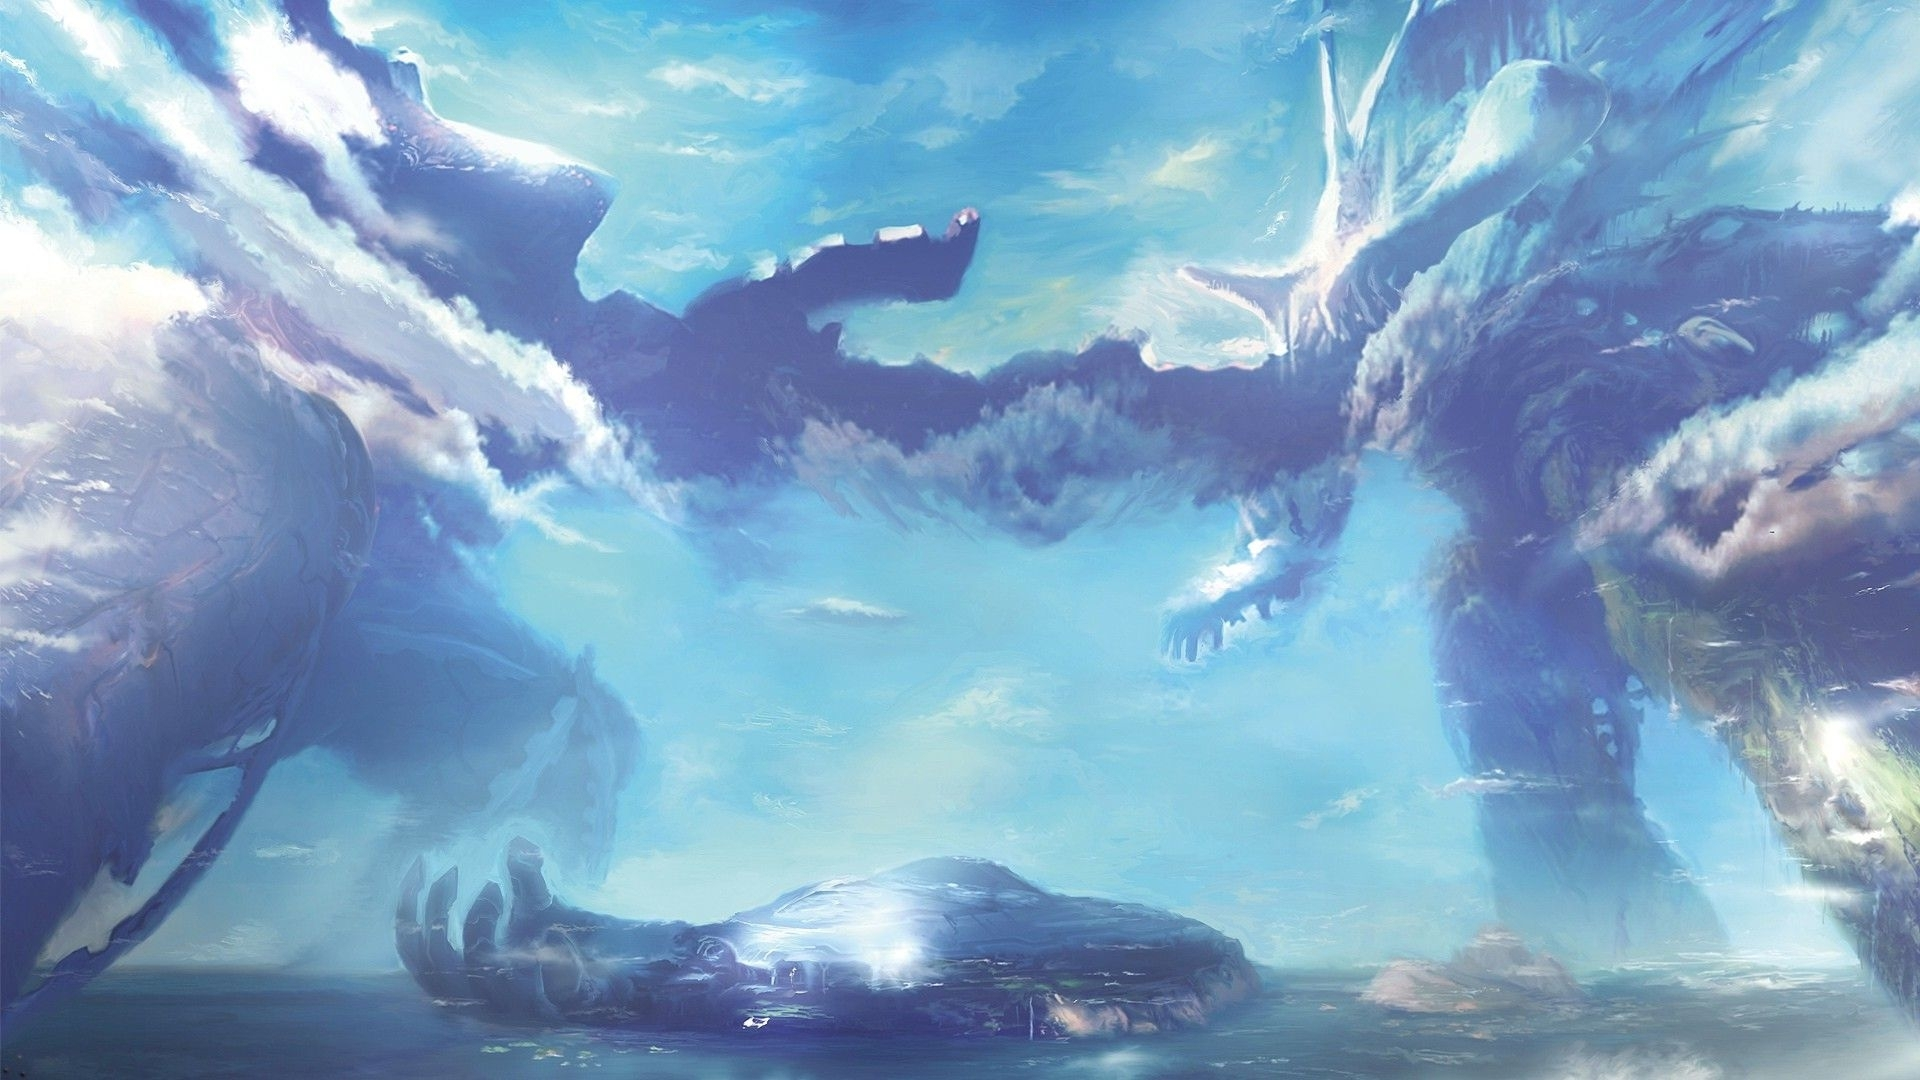 10 Most Popular Xenoblade Chronicles Desktop Wallpaper FULL HD 1080p For PC Desktop